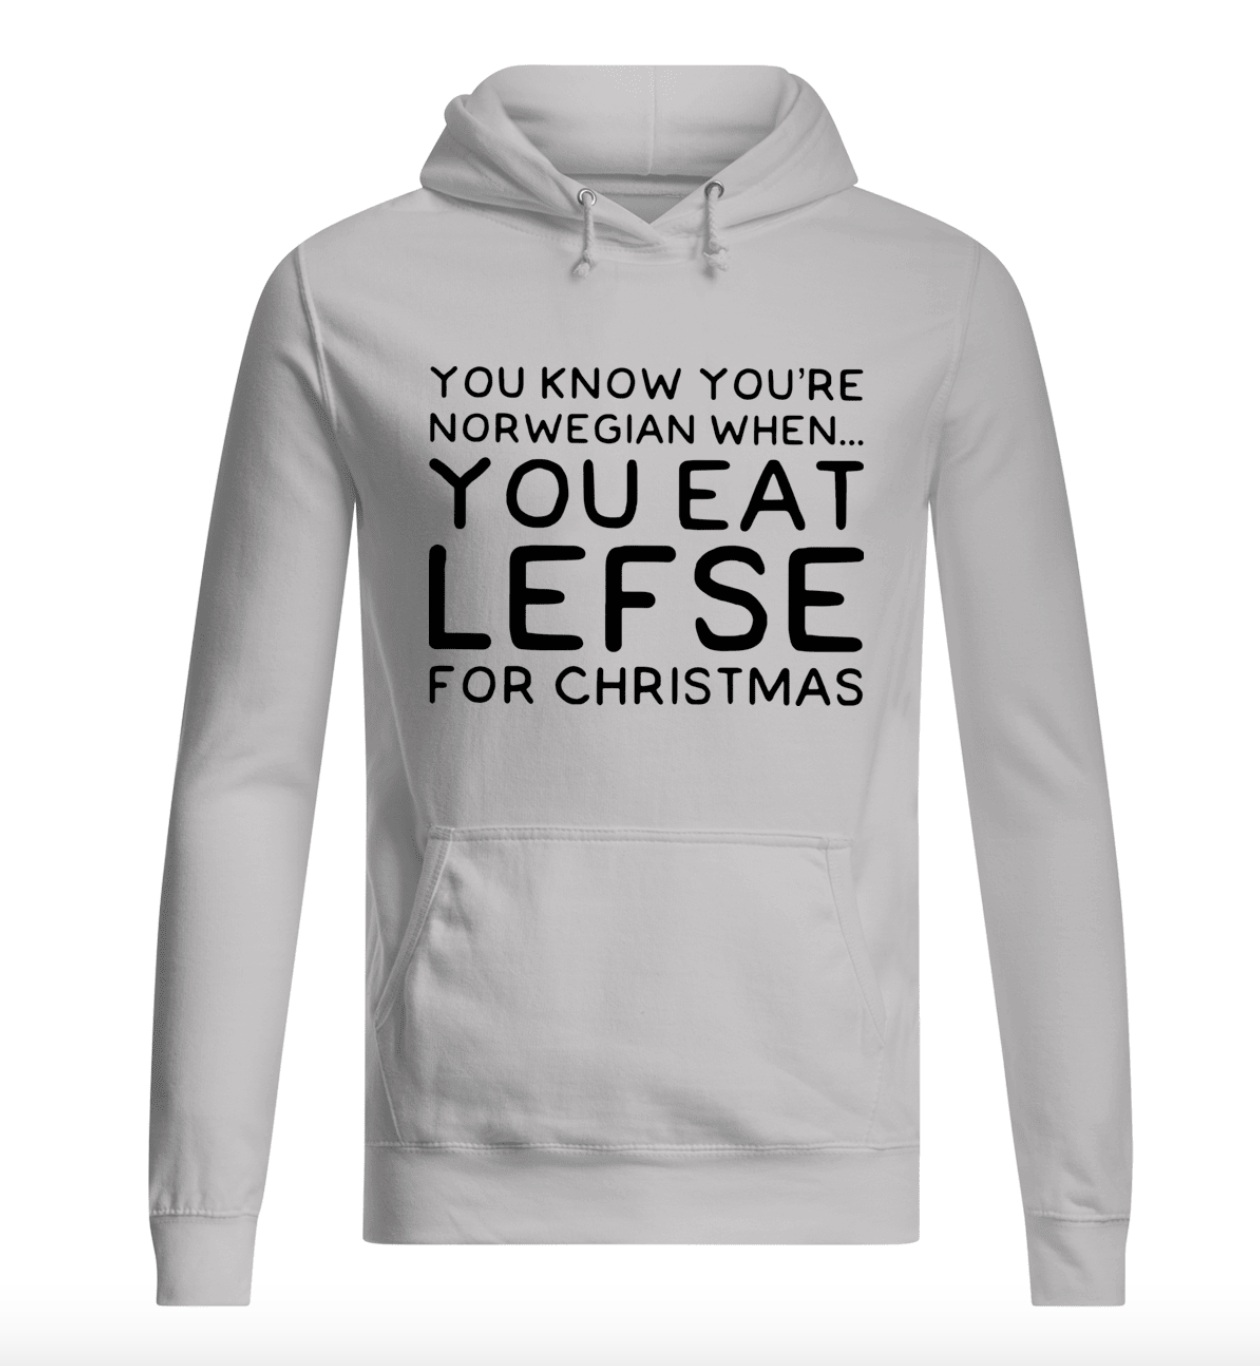 You know you're Norwegian when you eat lefse for Christmas hoodie